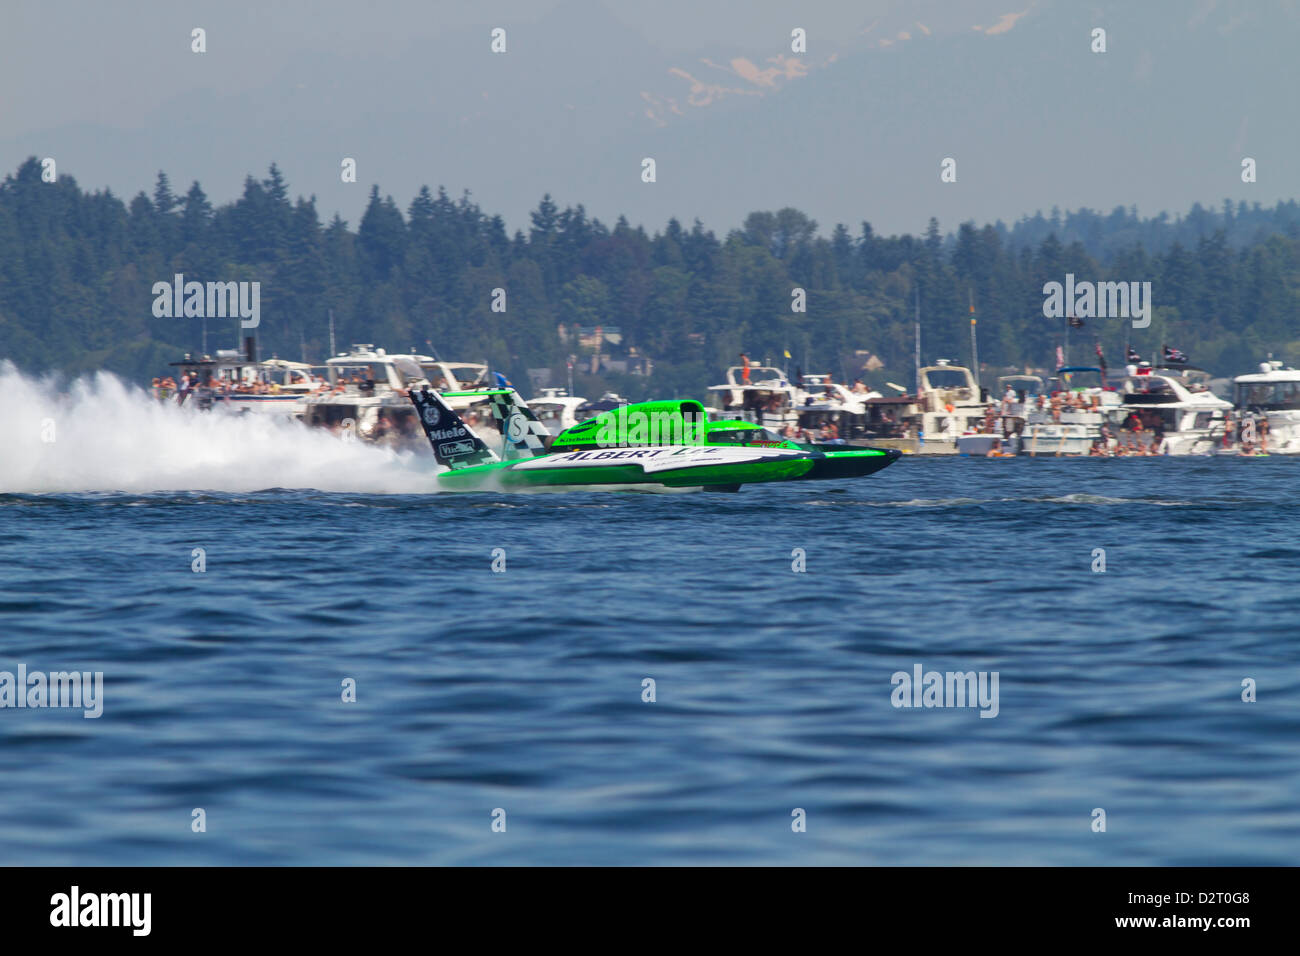 WA, Seattle, Seafair, Unlimited Hydroplane Races, Lake